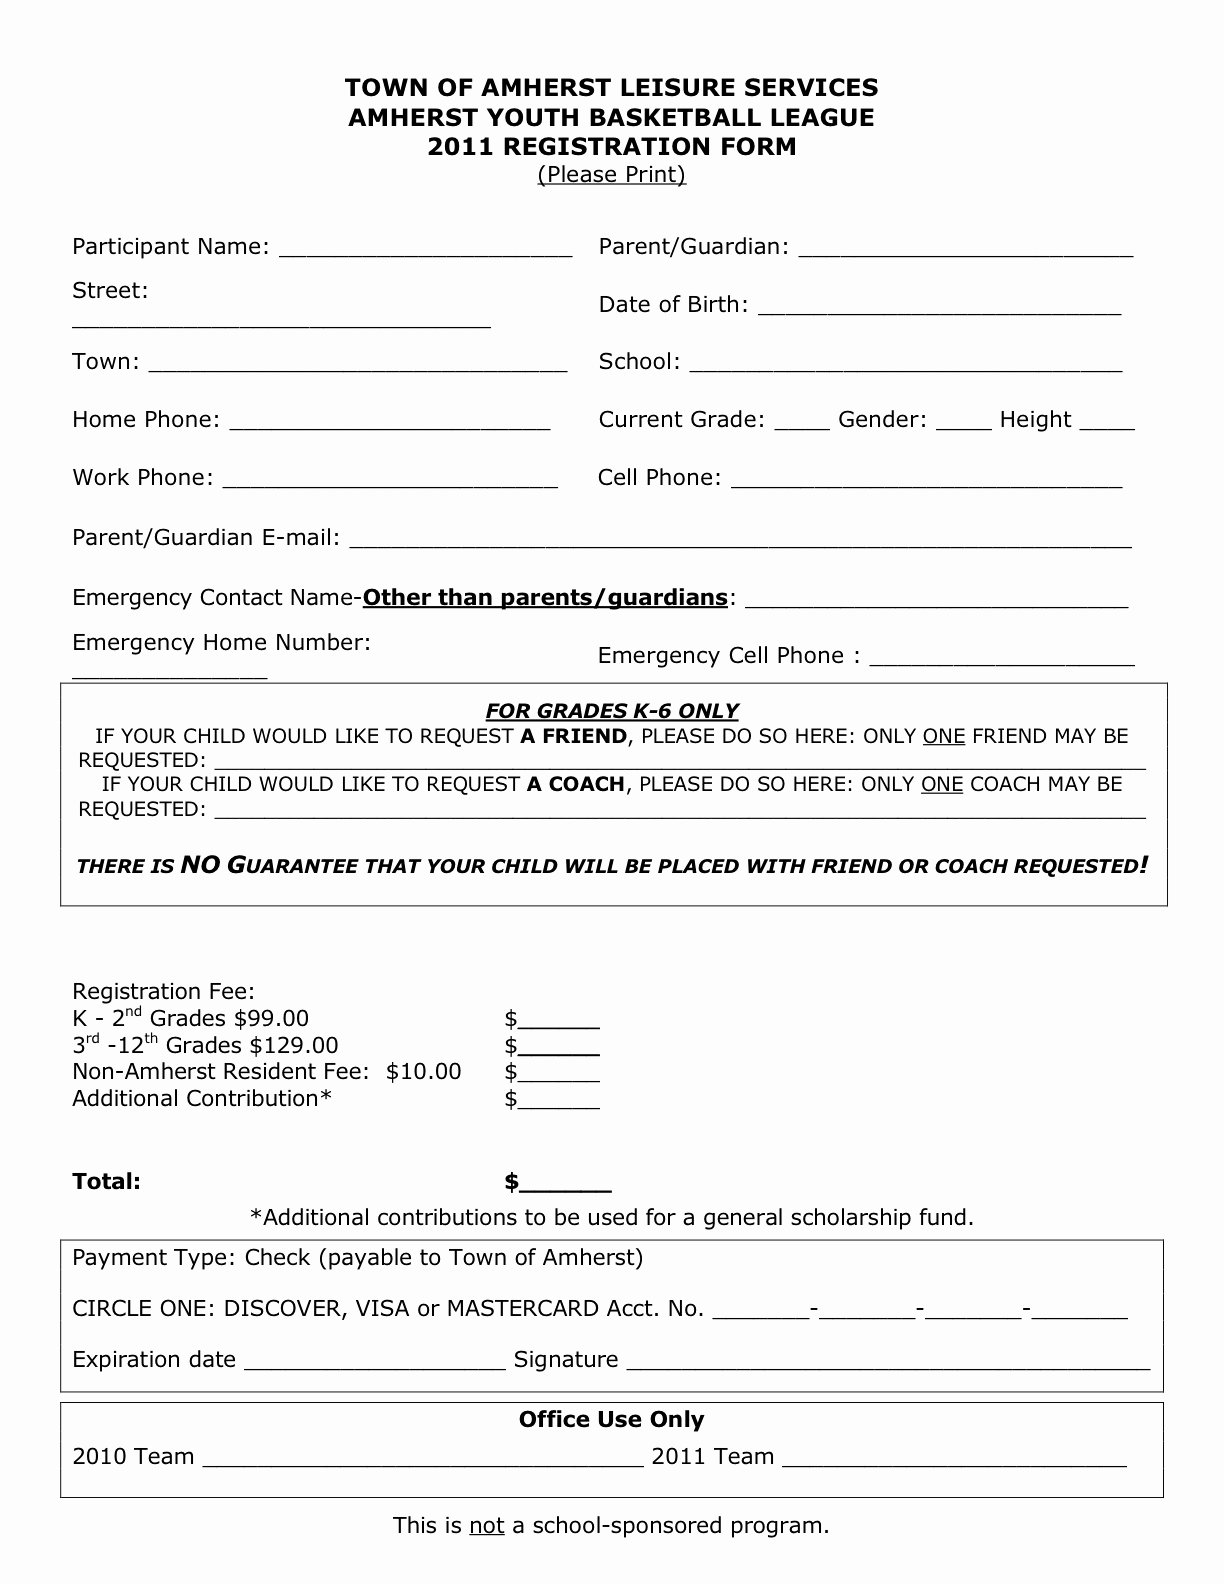 Application form Registration form Template HTML Free